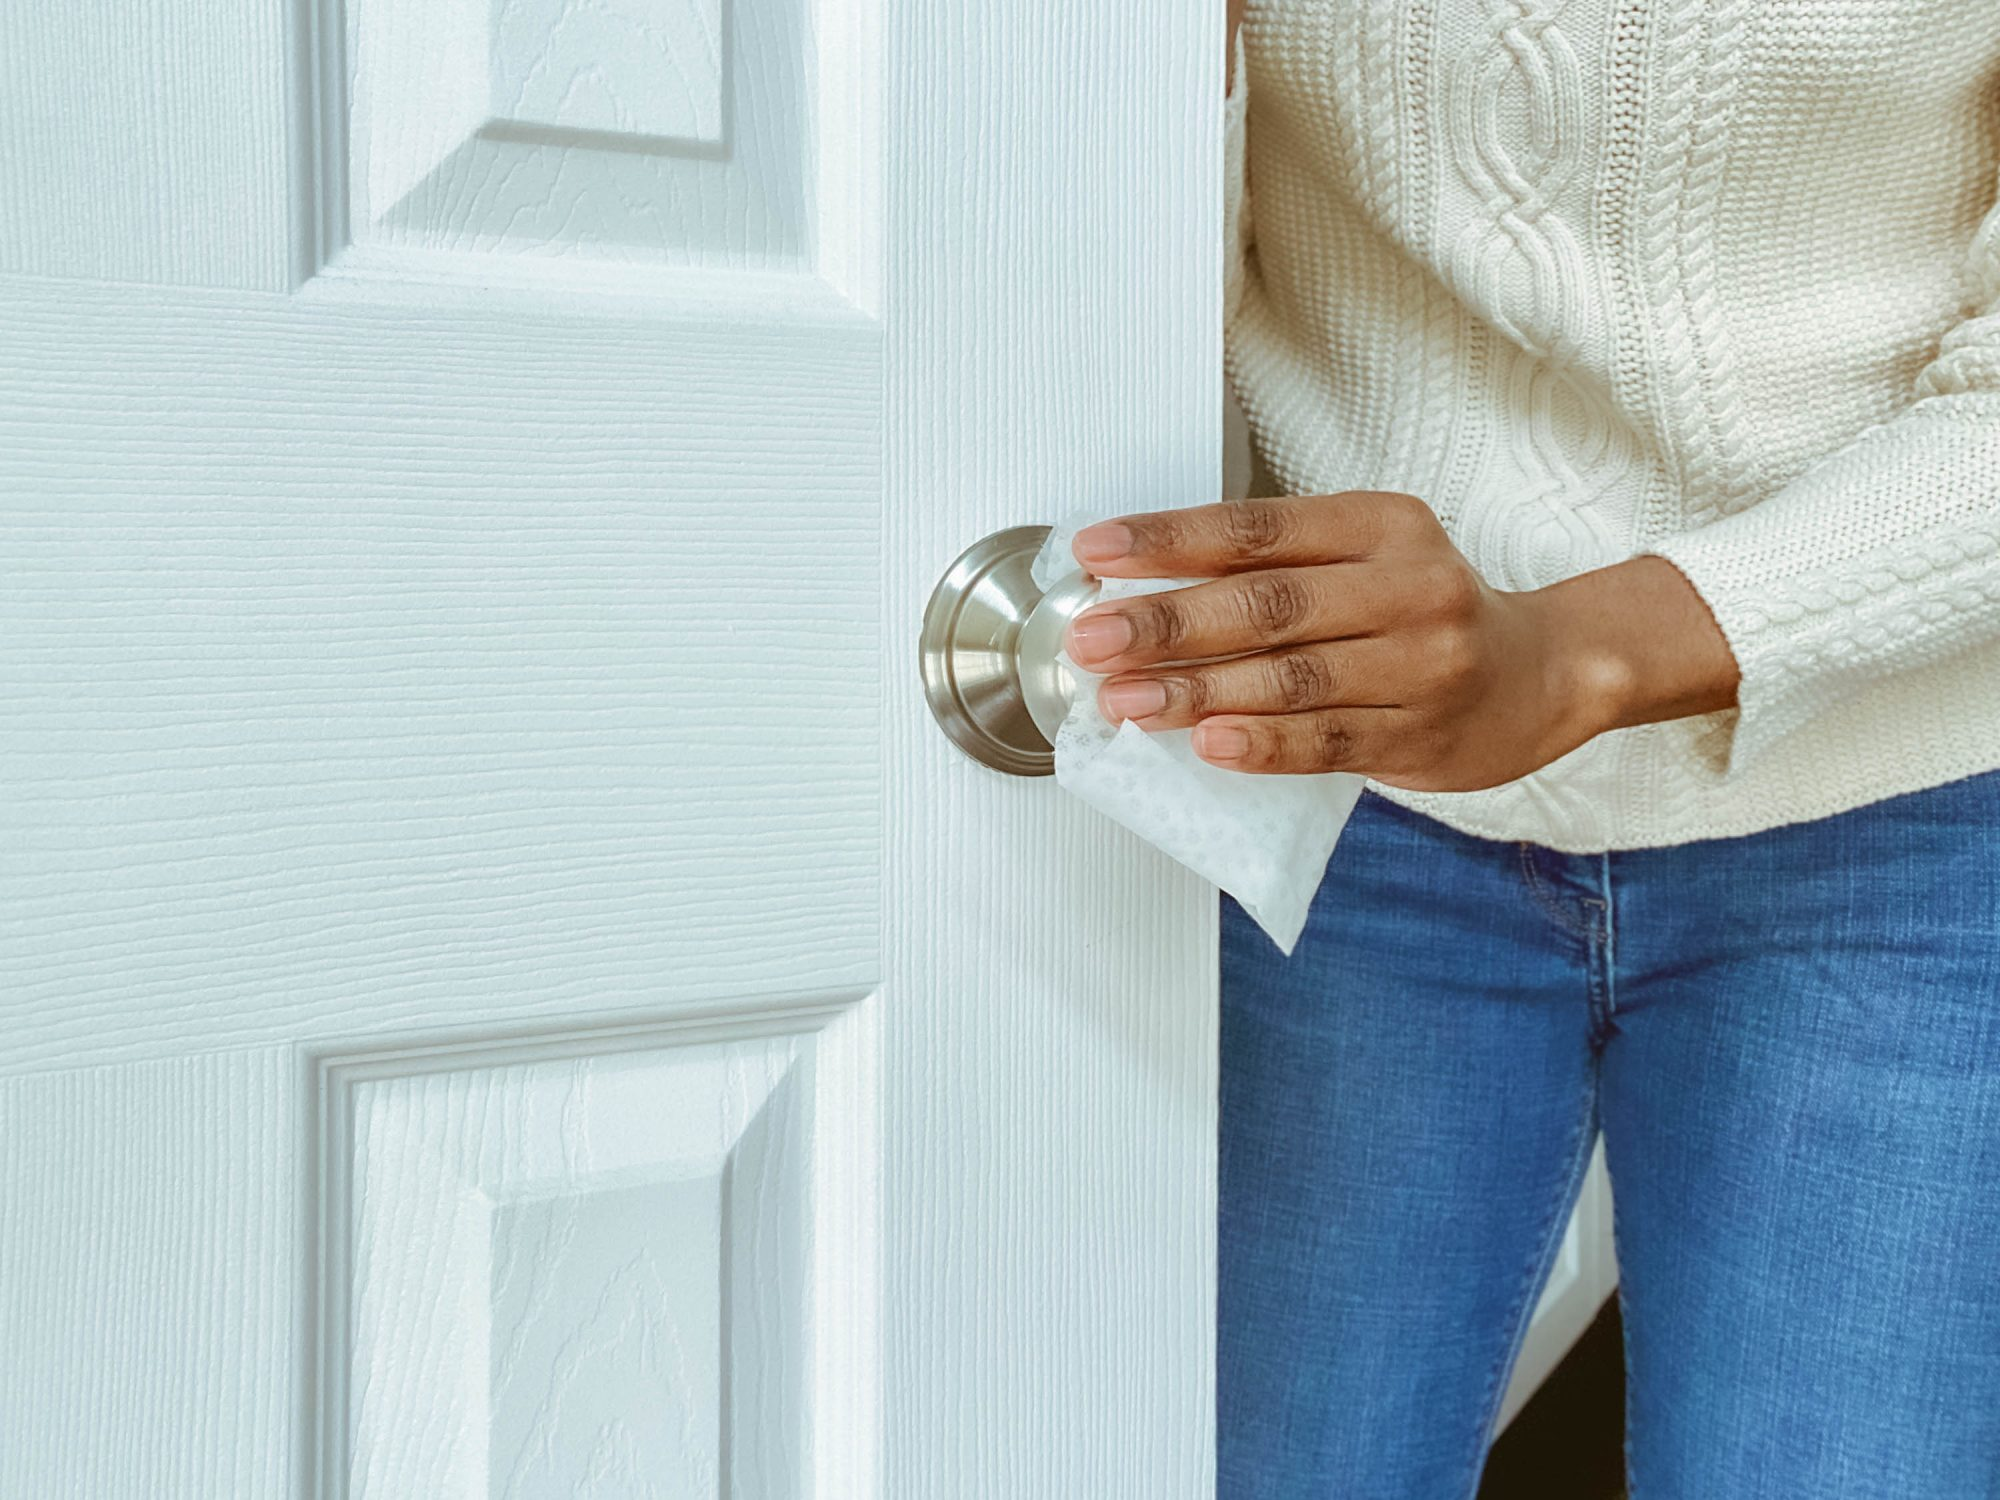 An image of a woman cleaning a doorknob using a disinfecting wipe.